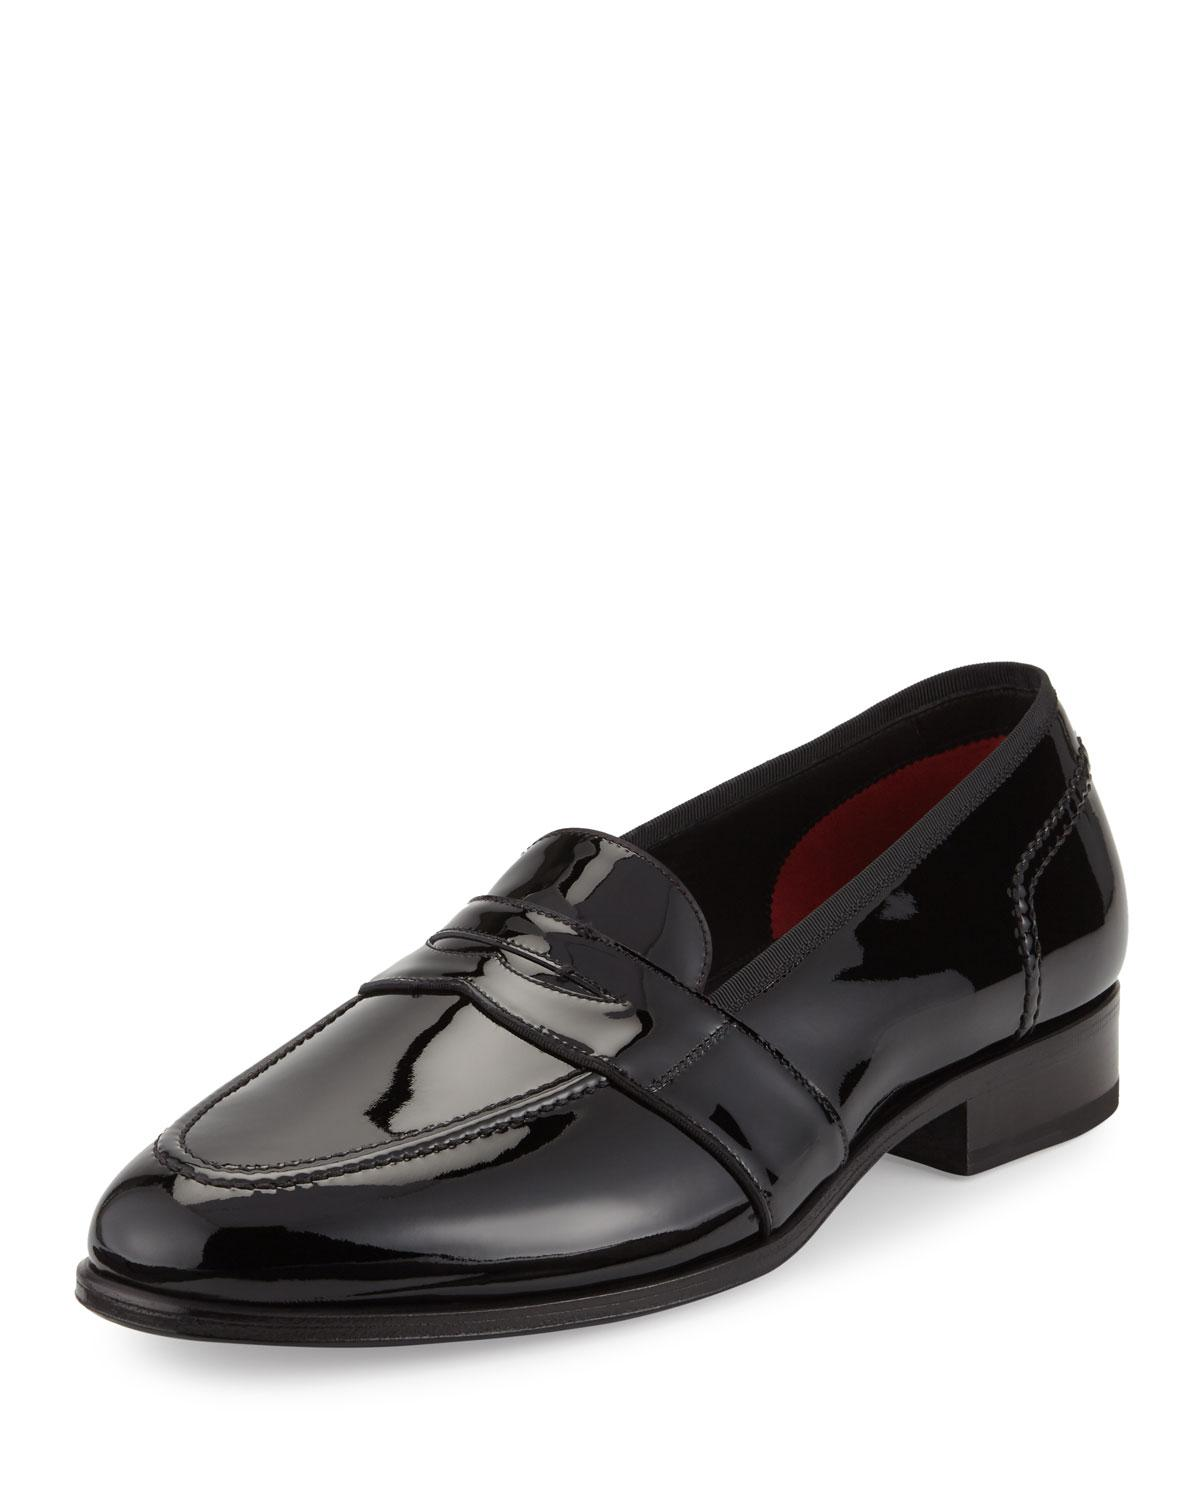 Single-Mong Strap leather black rubber sole Tom Ford V4f1F7